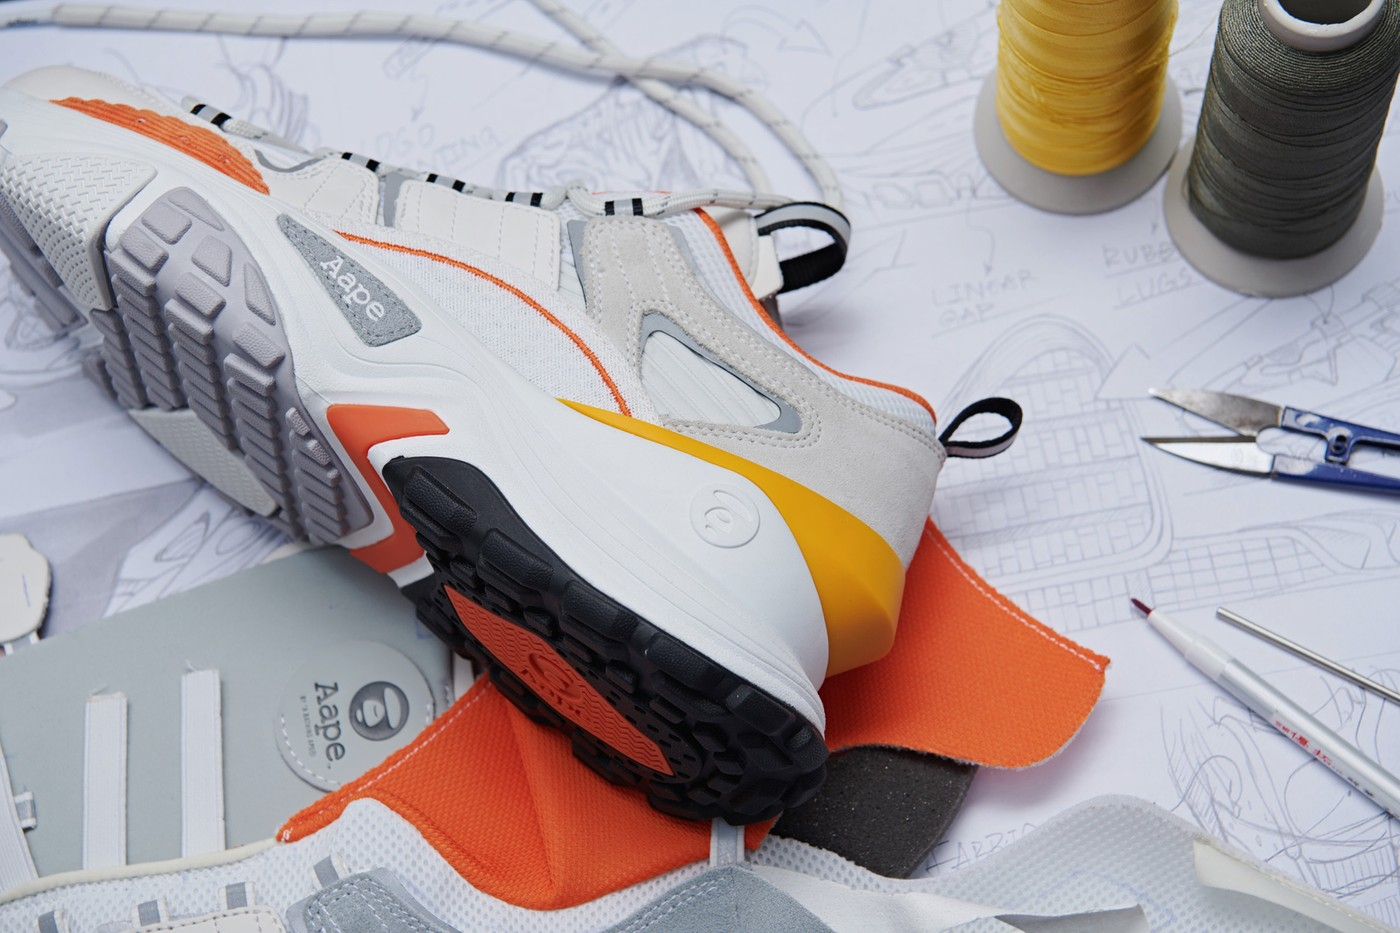 7c3a2bdc89 After introducing its inaugural footwear lineup for its sport-oriented  AAPE+ division, AAPE by A Bathing Ape has also decided to expand into the  realm of ...